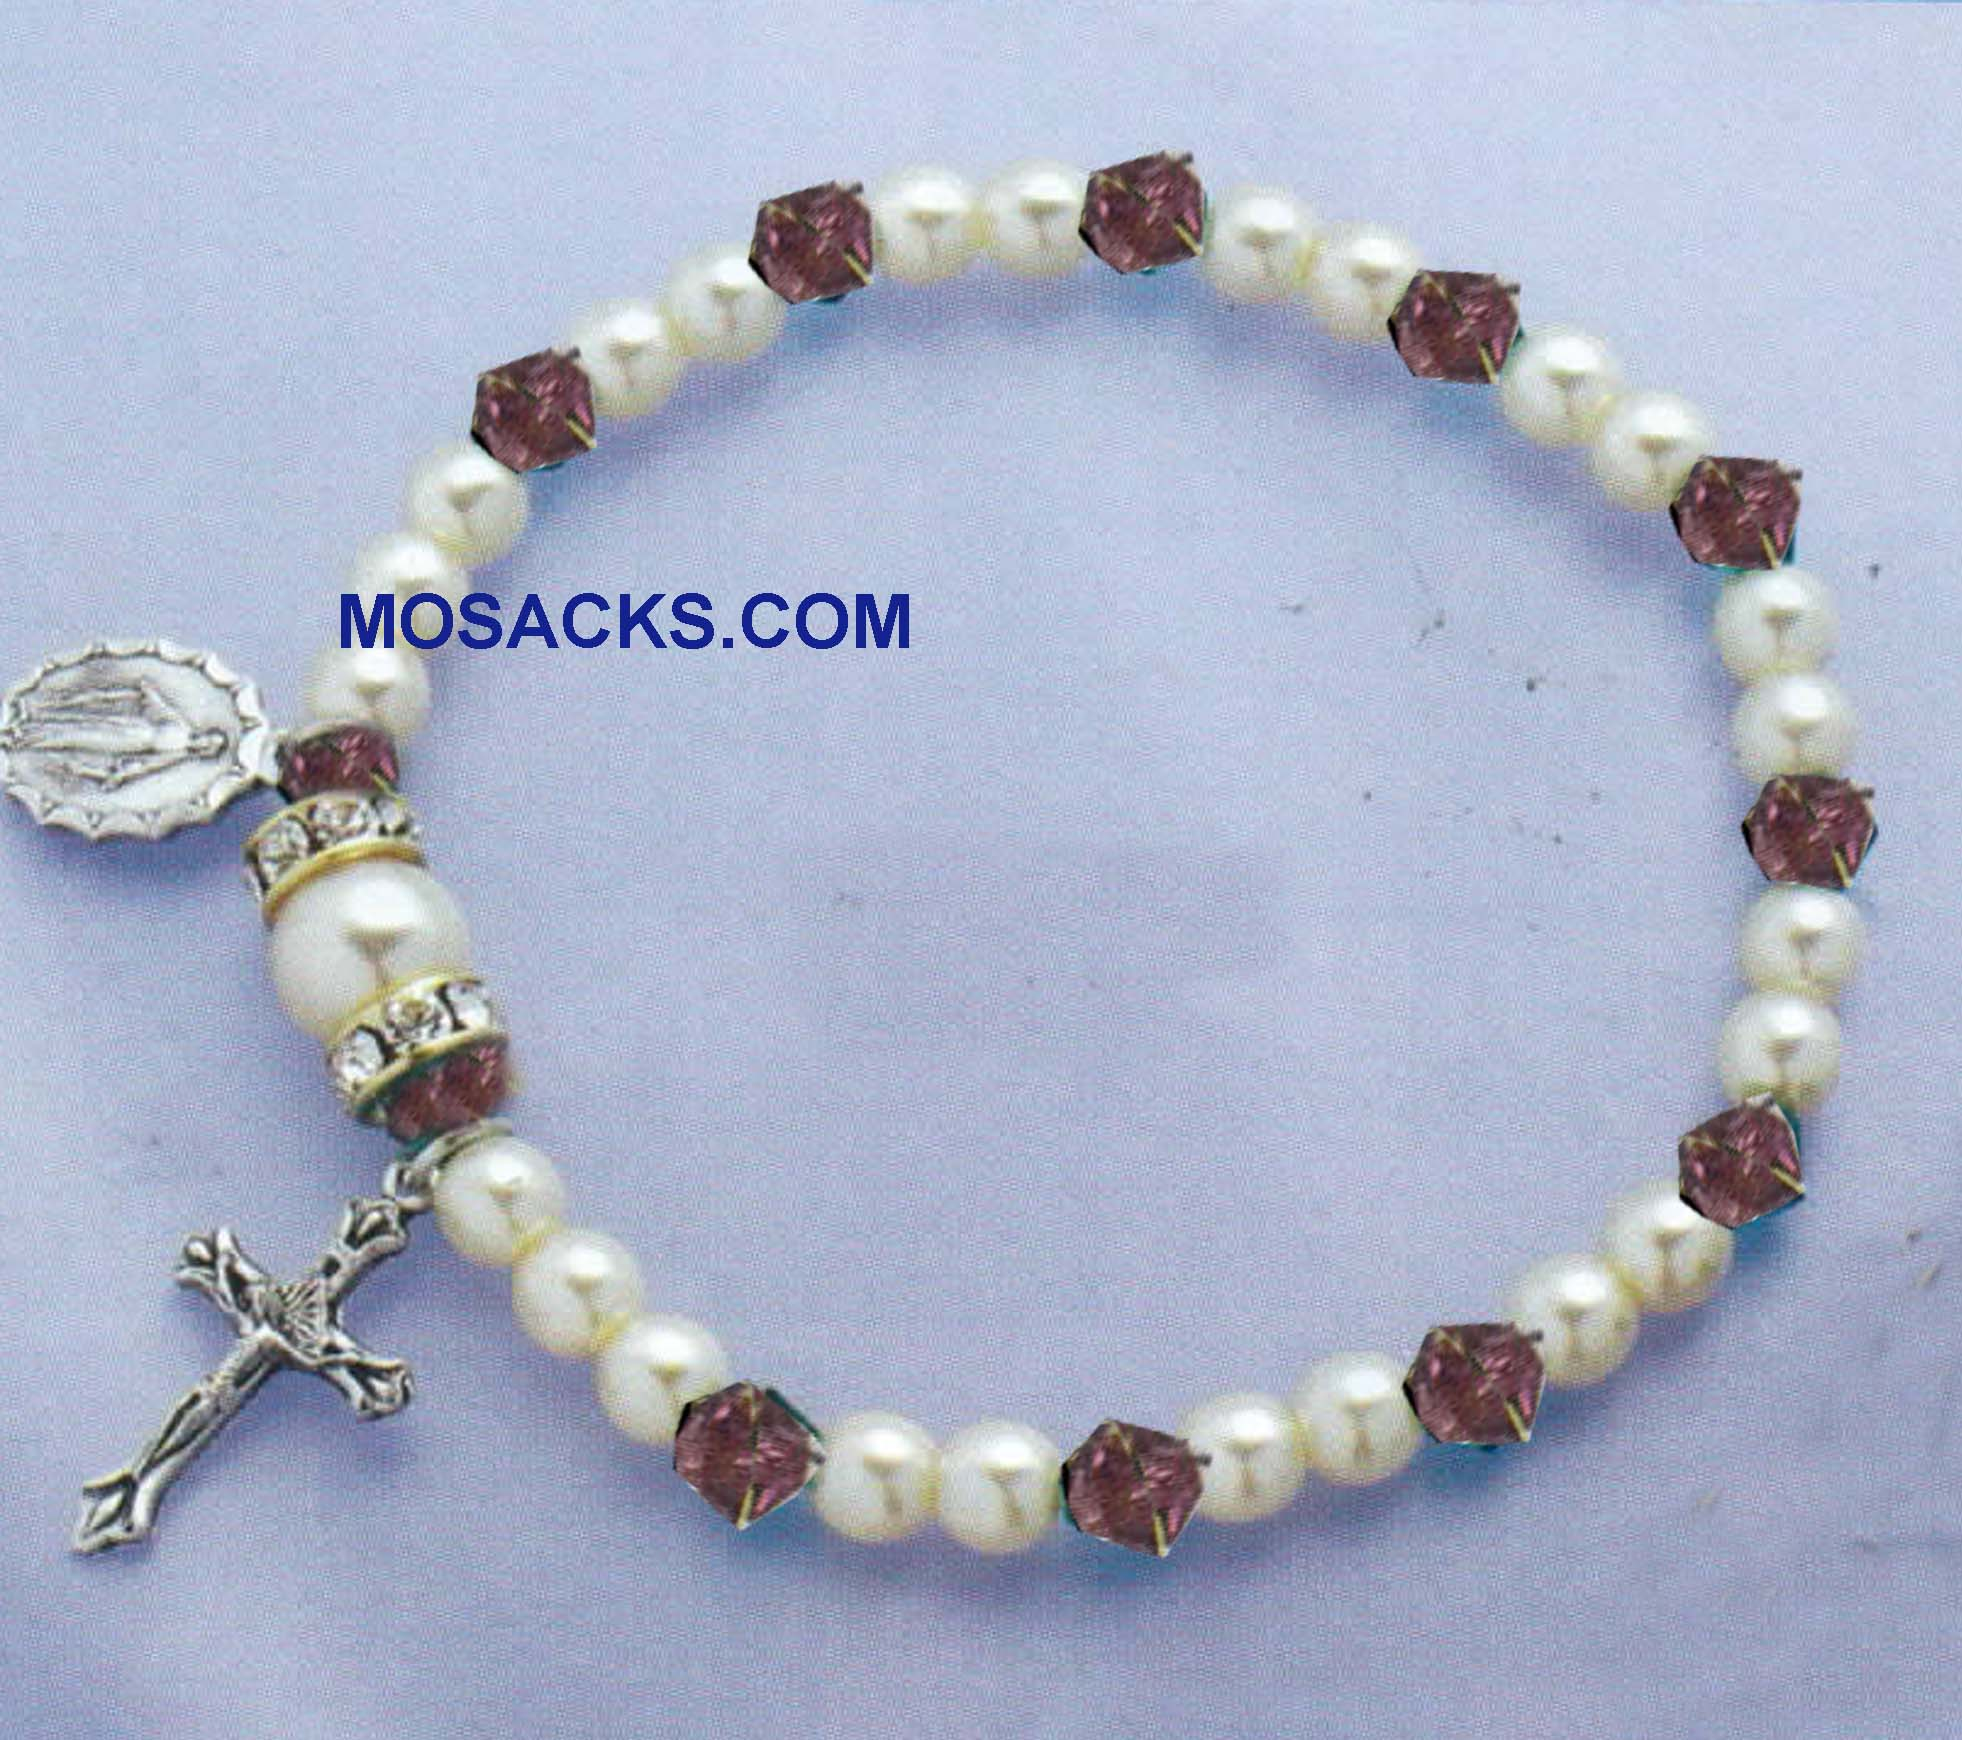 Birthstone Rosary Stretch Bracelet Amethyst-45280AM